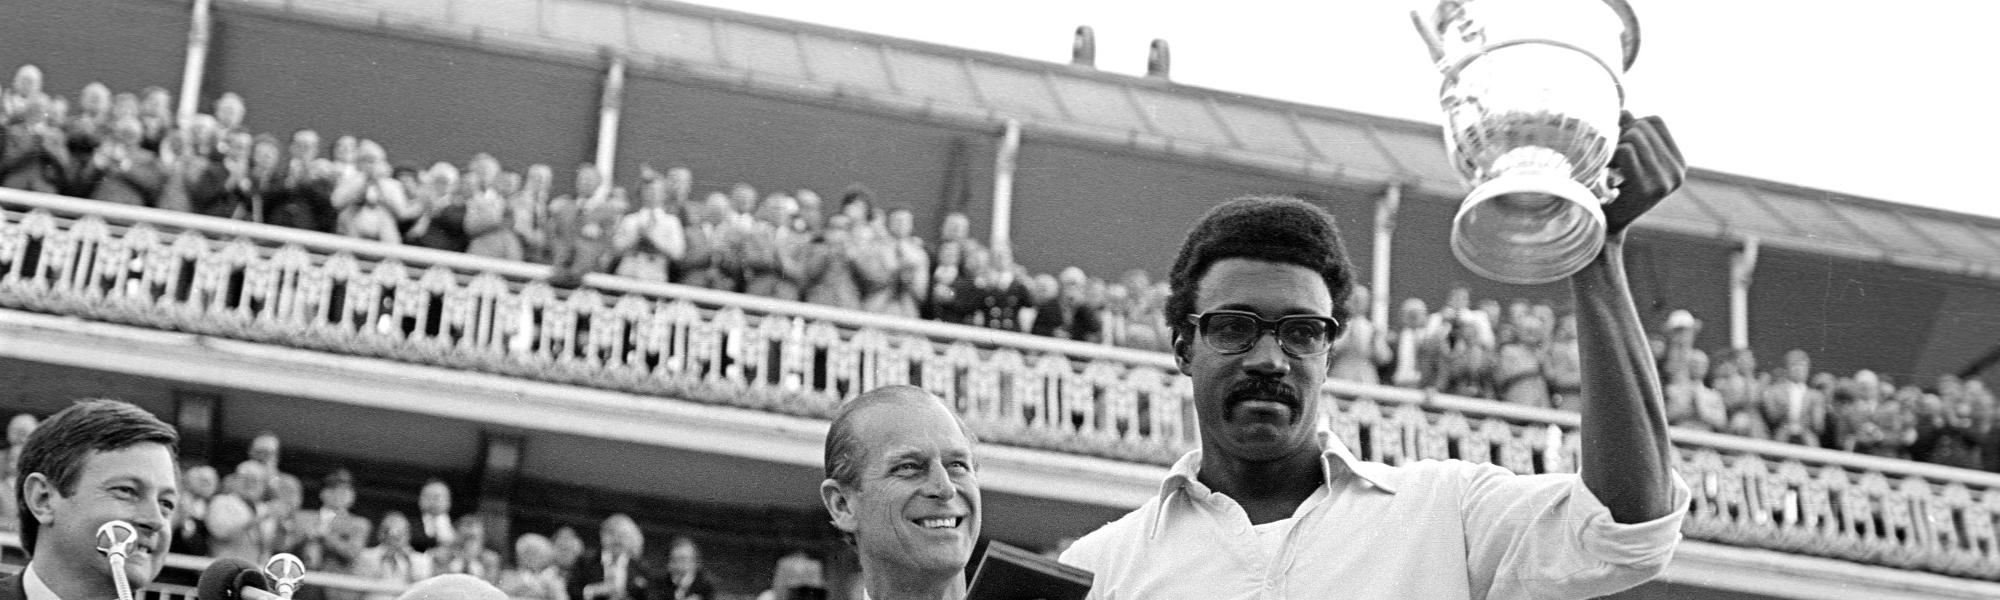 Clive Lloyd with the 1975 World Cup